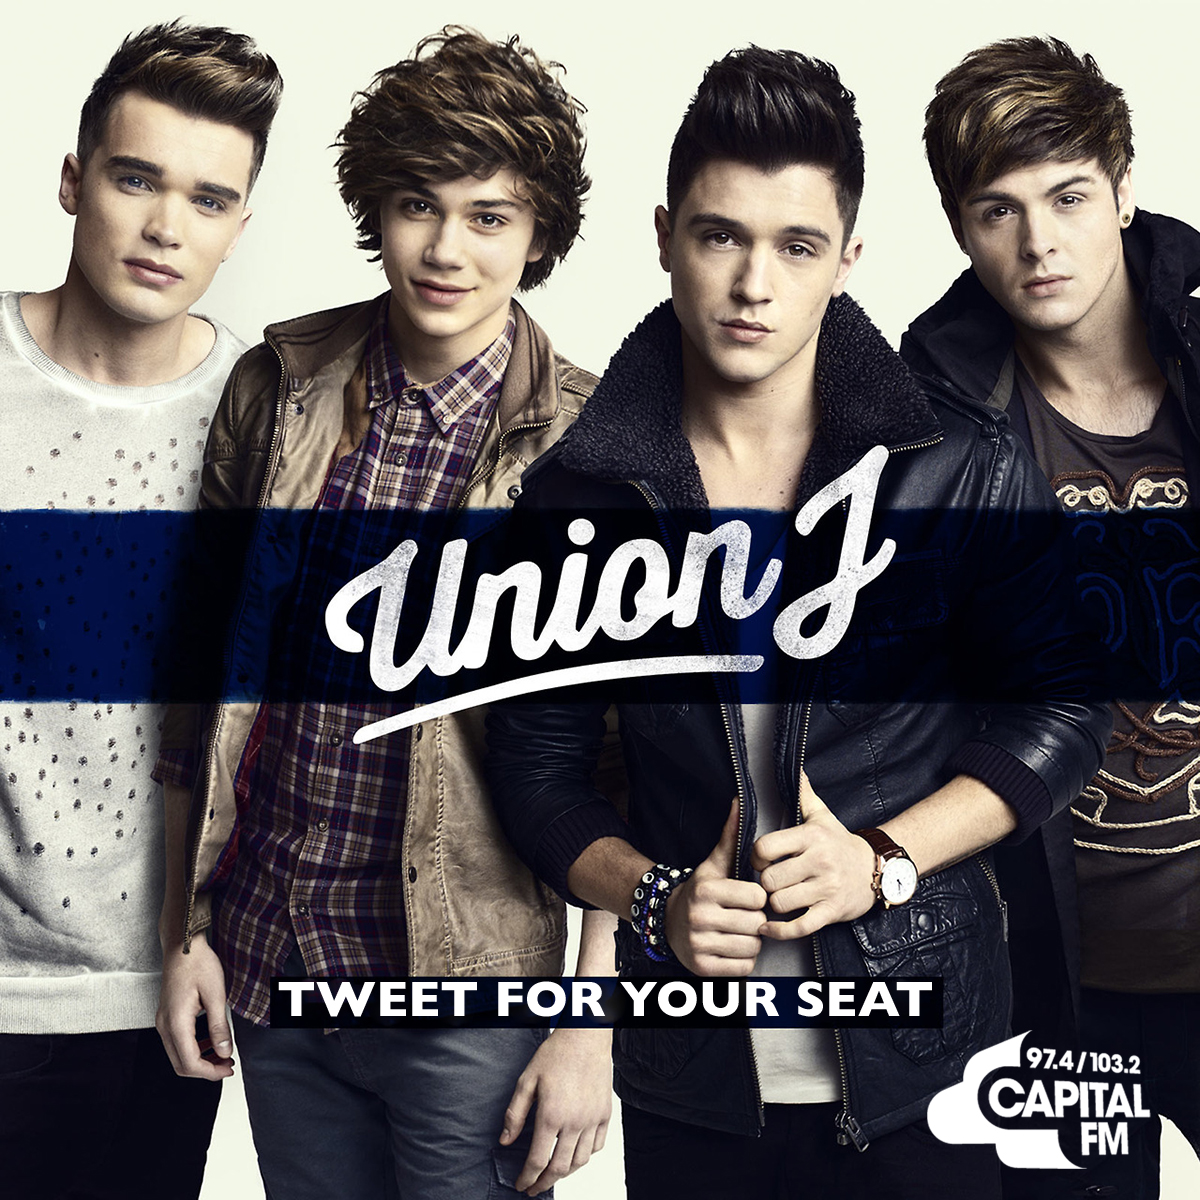 Union J - Tweet for your seat